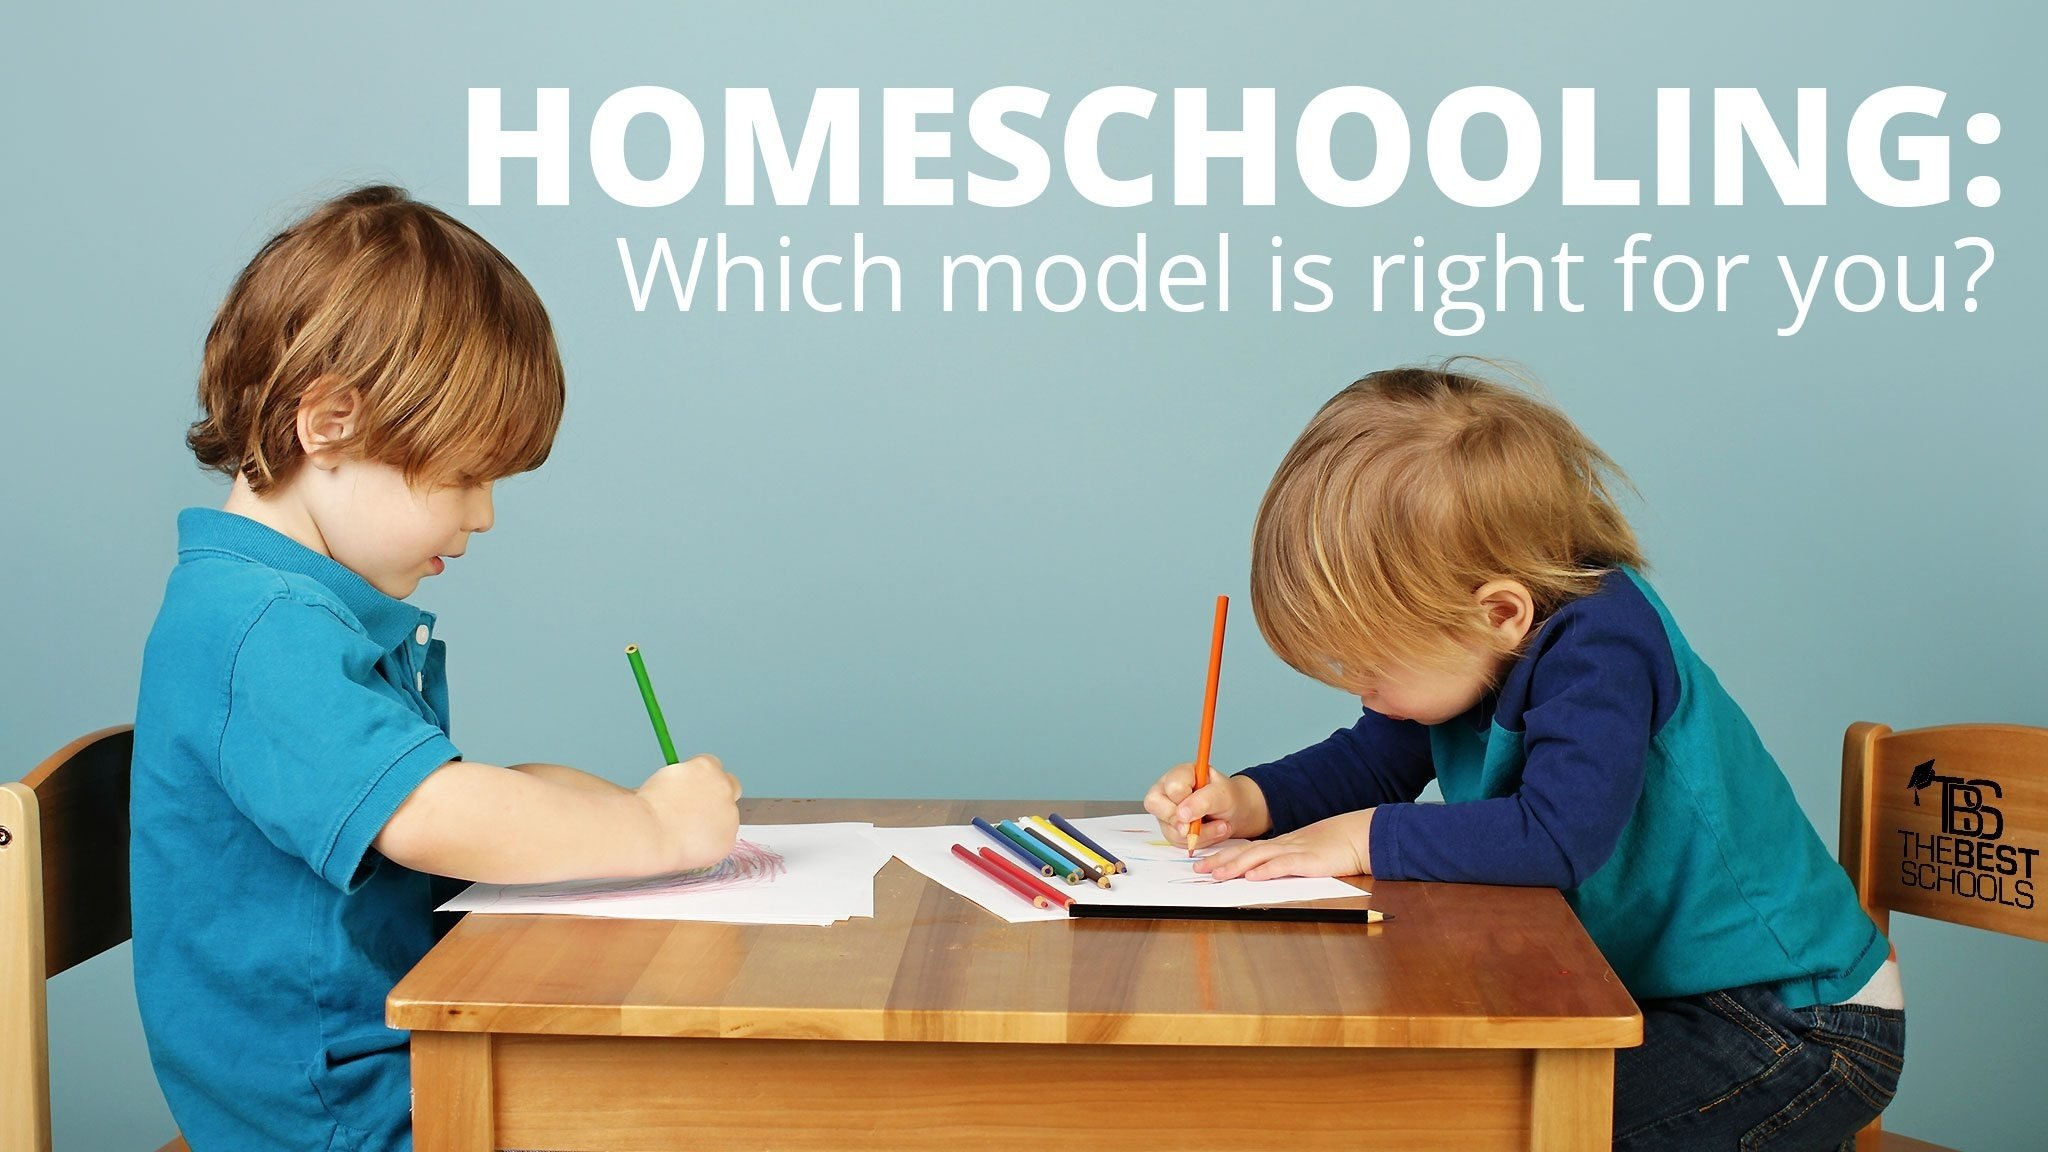 10 Perfect Is Homeschooling A Good Idea homeschooling which model is right for you the best schools